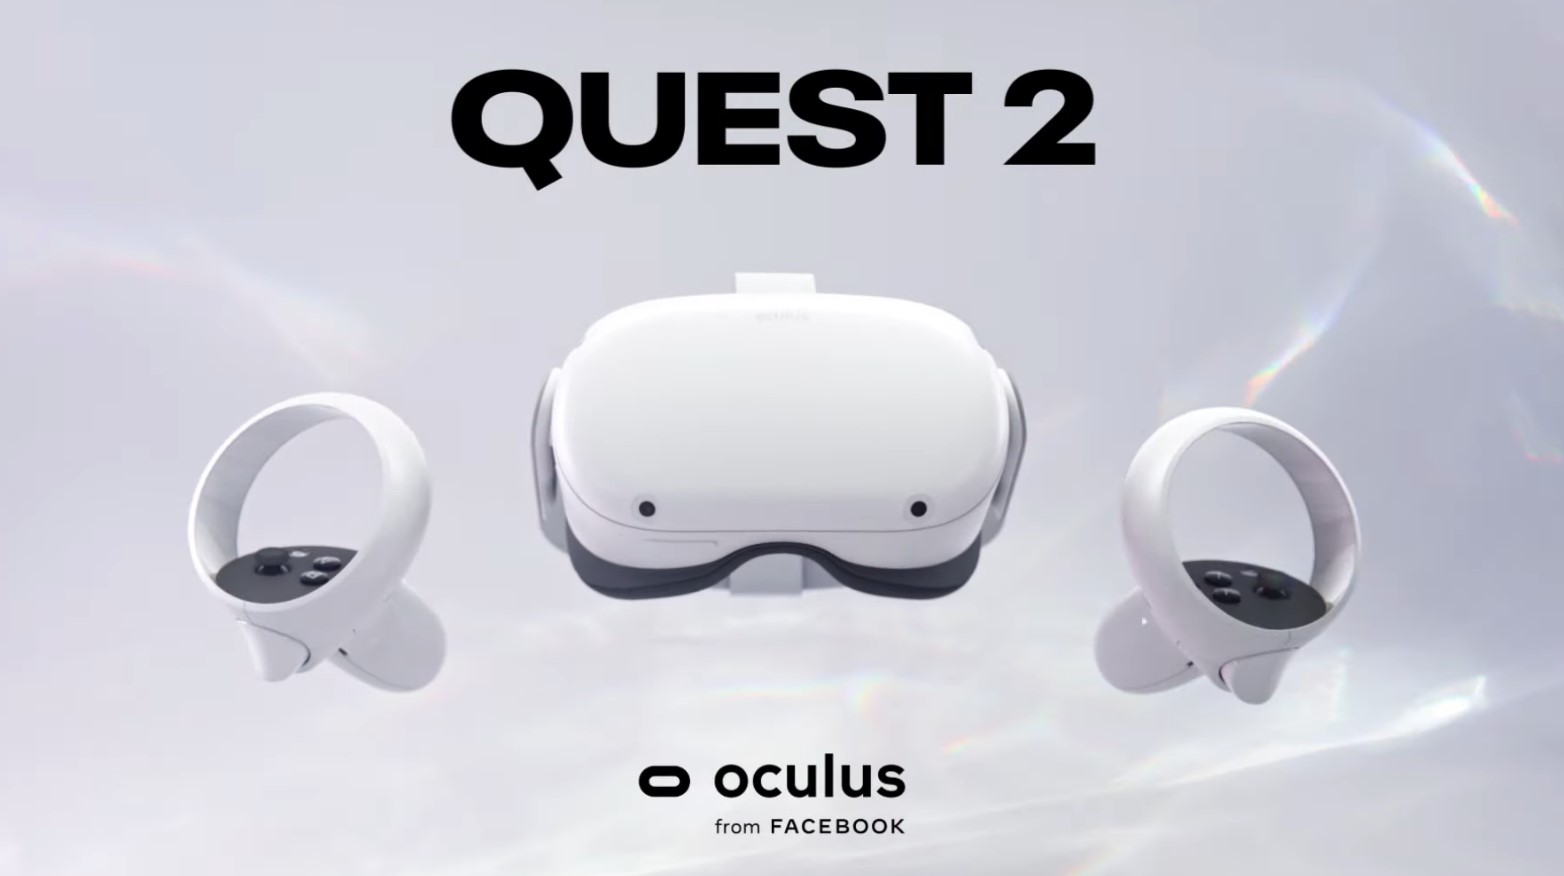 Oculus Quest 2 is official, pre-orders available now